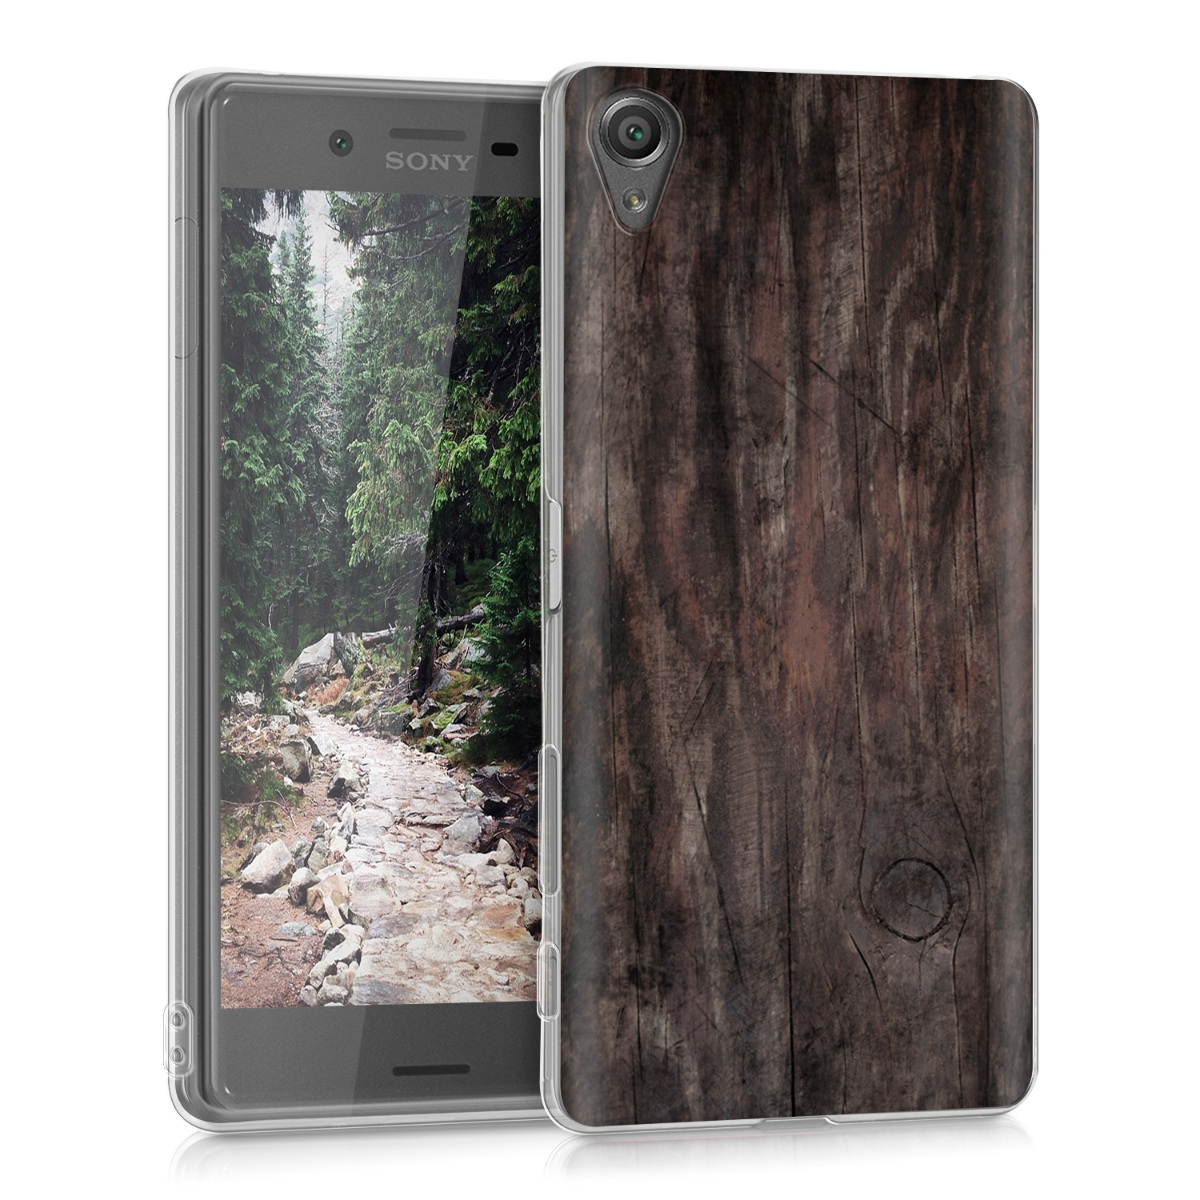 cover f r sony xperia x h lle vintage holz dunkelbraun silikon backcover ebay. Black Bedroom Furniture Sets. Home Design Ideas